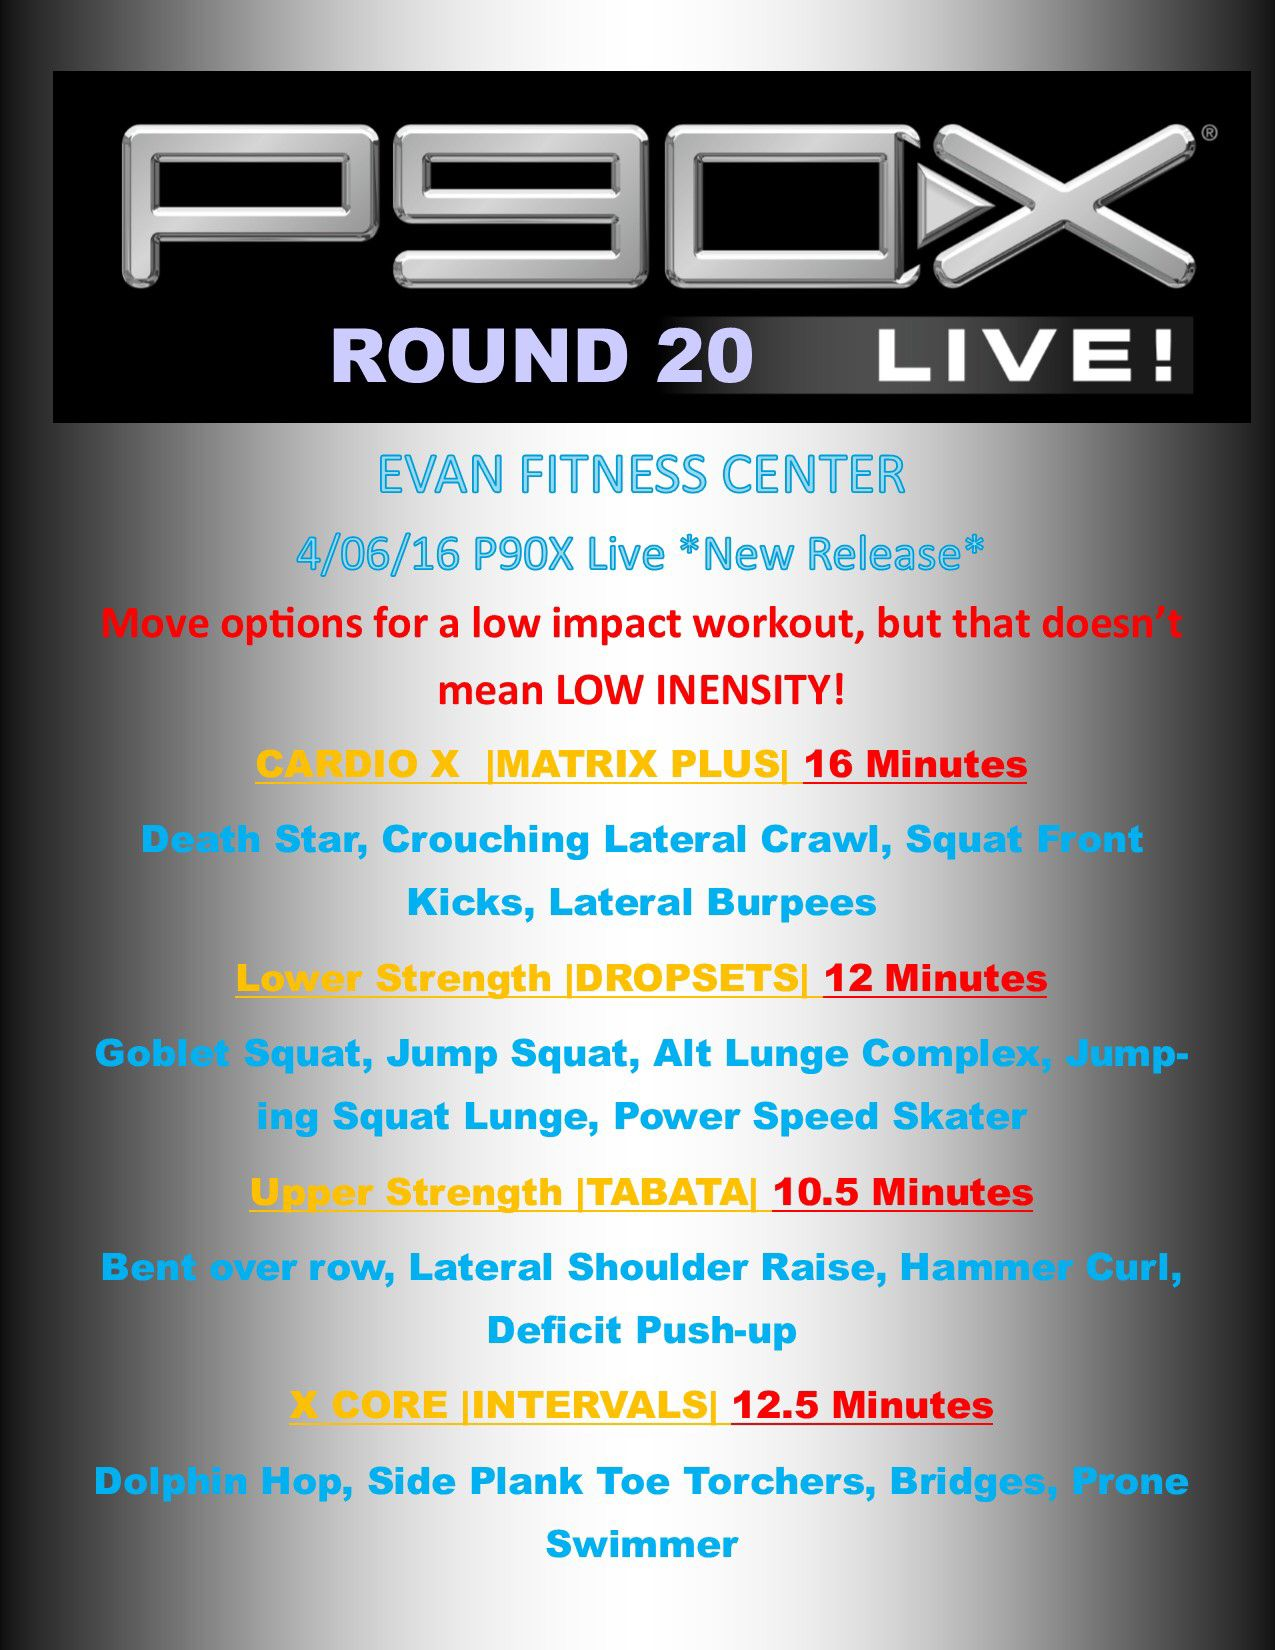 P90x Workout Routine Details